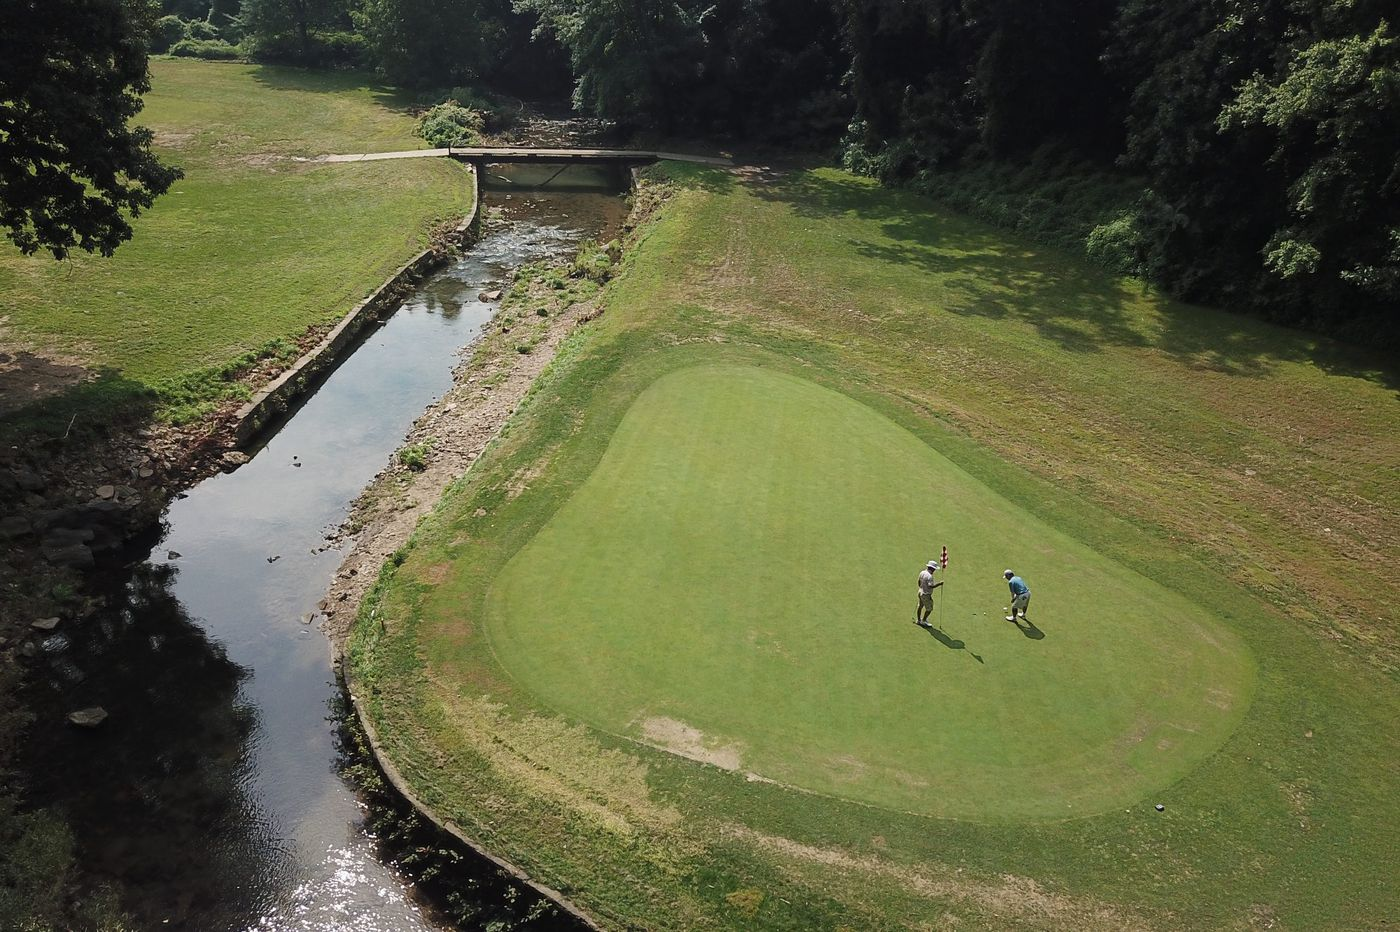 Cobbs Creek Golf Course on verge of a major restoration